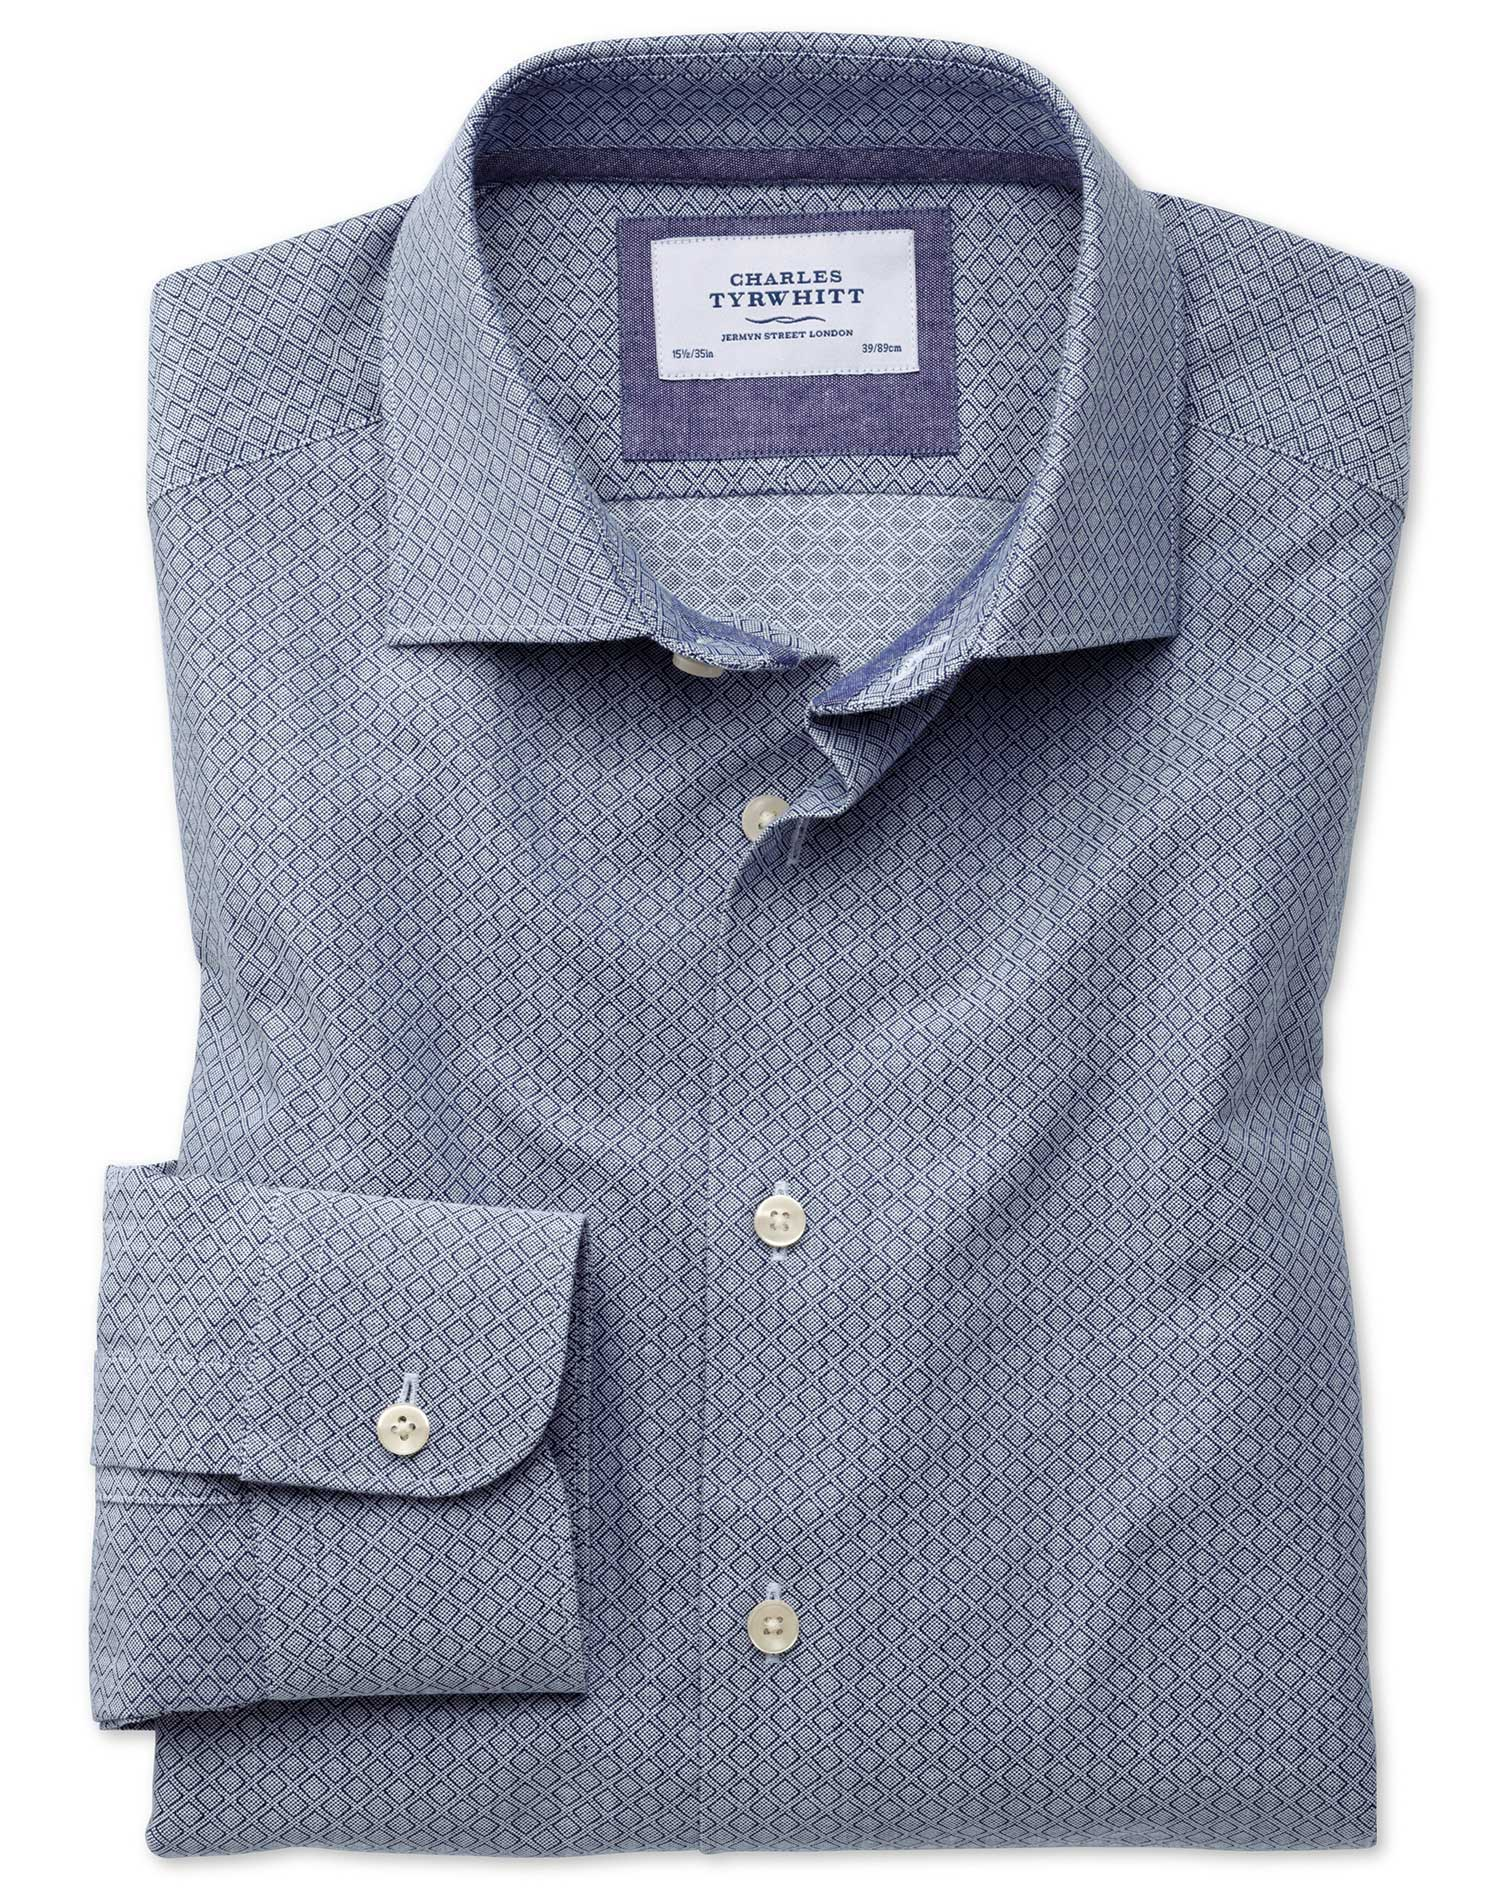 Classic Fit Semi-Cutaway Business Casual Diamond Texture Navy and Grey Cotton Formal Shirt Single Cu